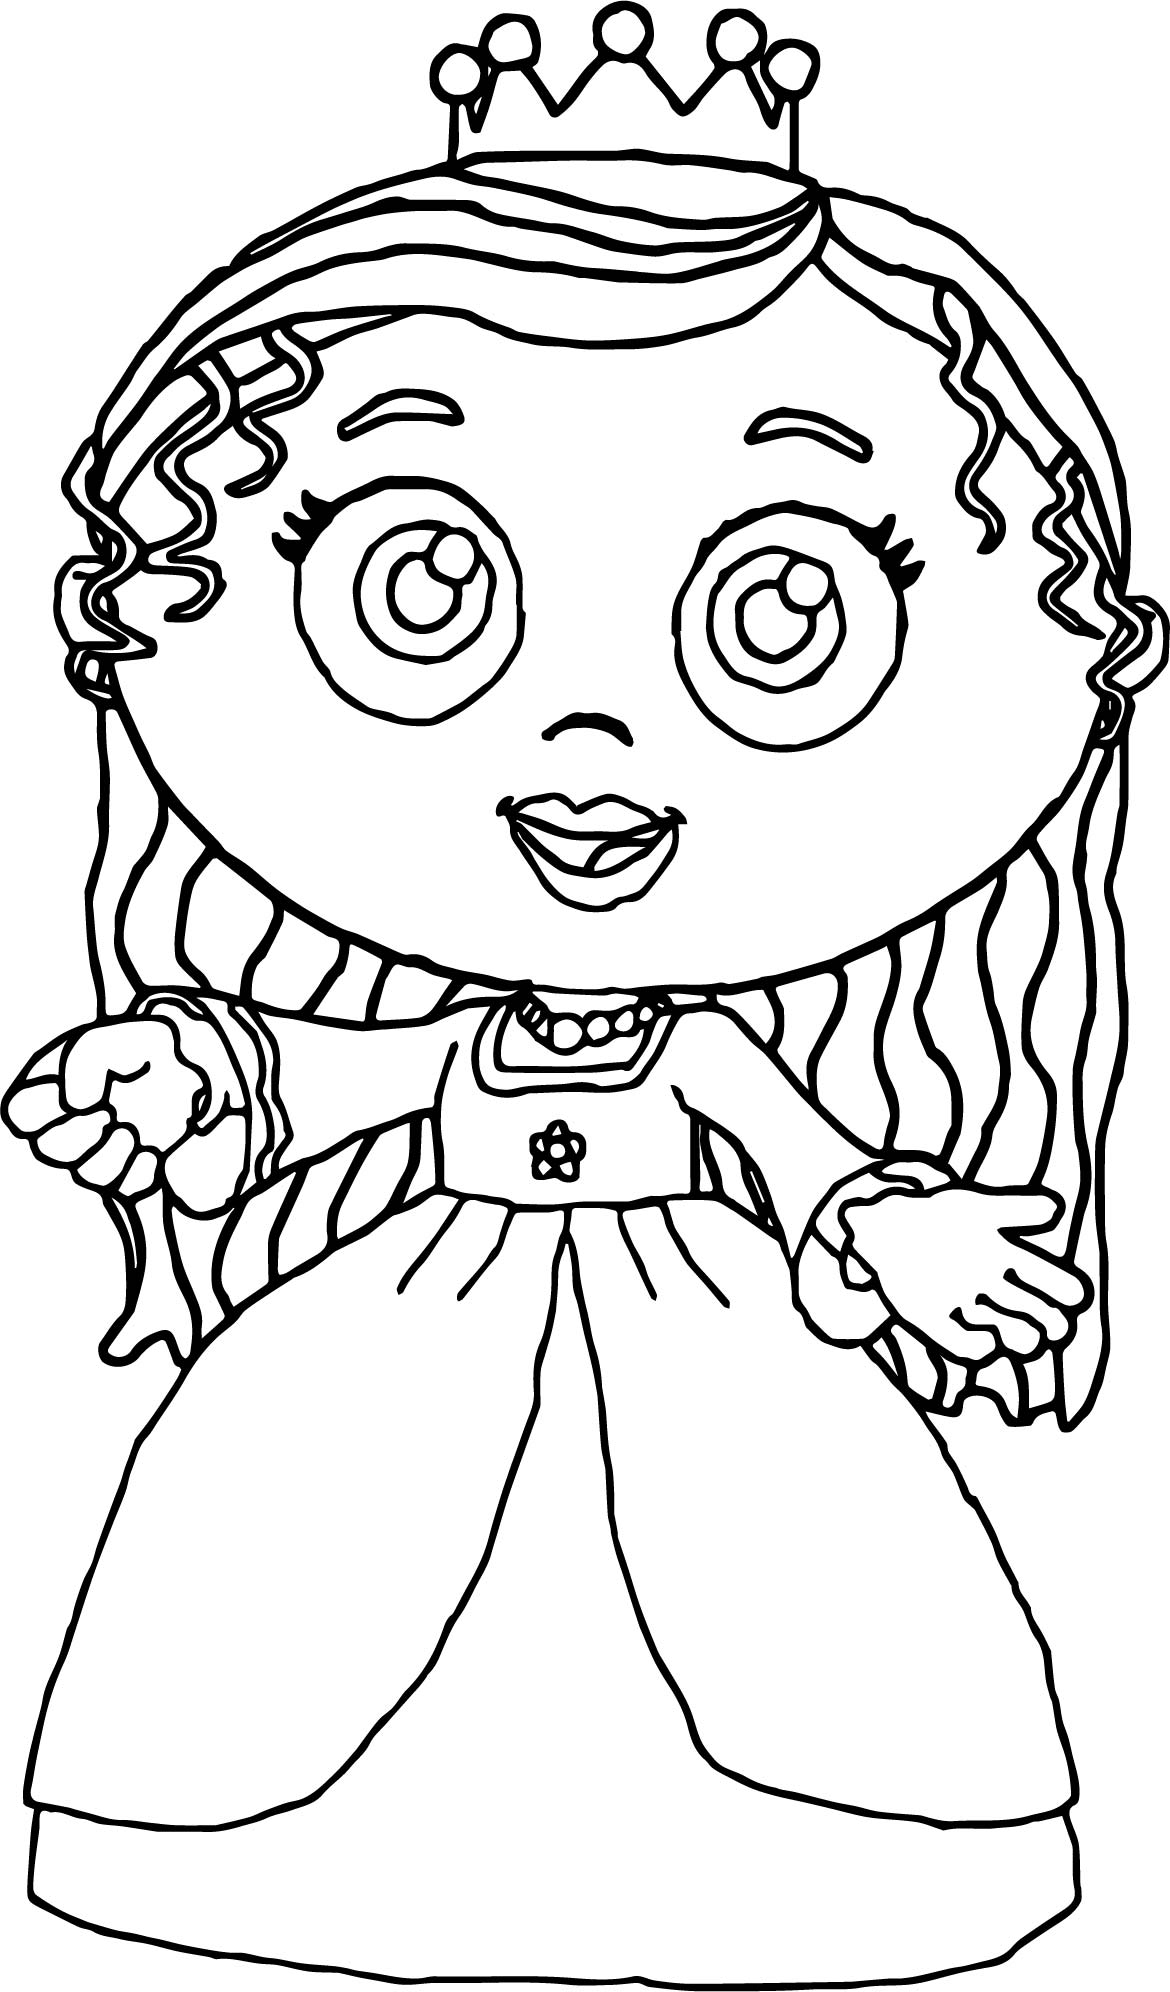 princess and the pea coloring page. princess pea super why coloring page and the